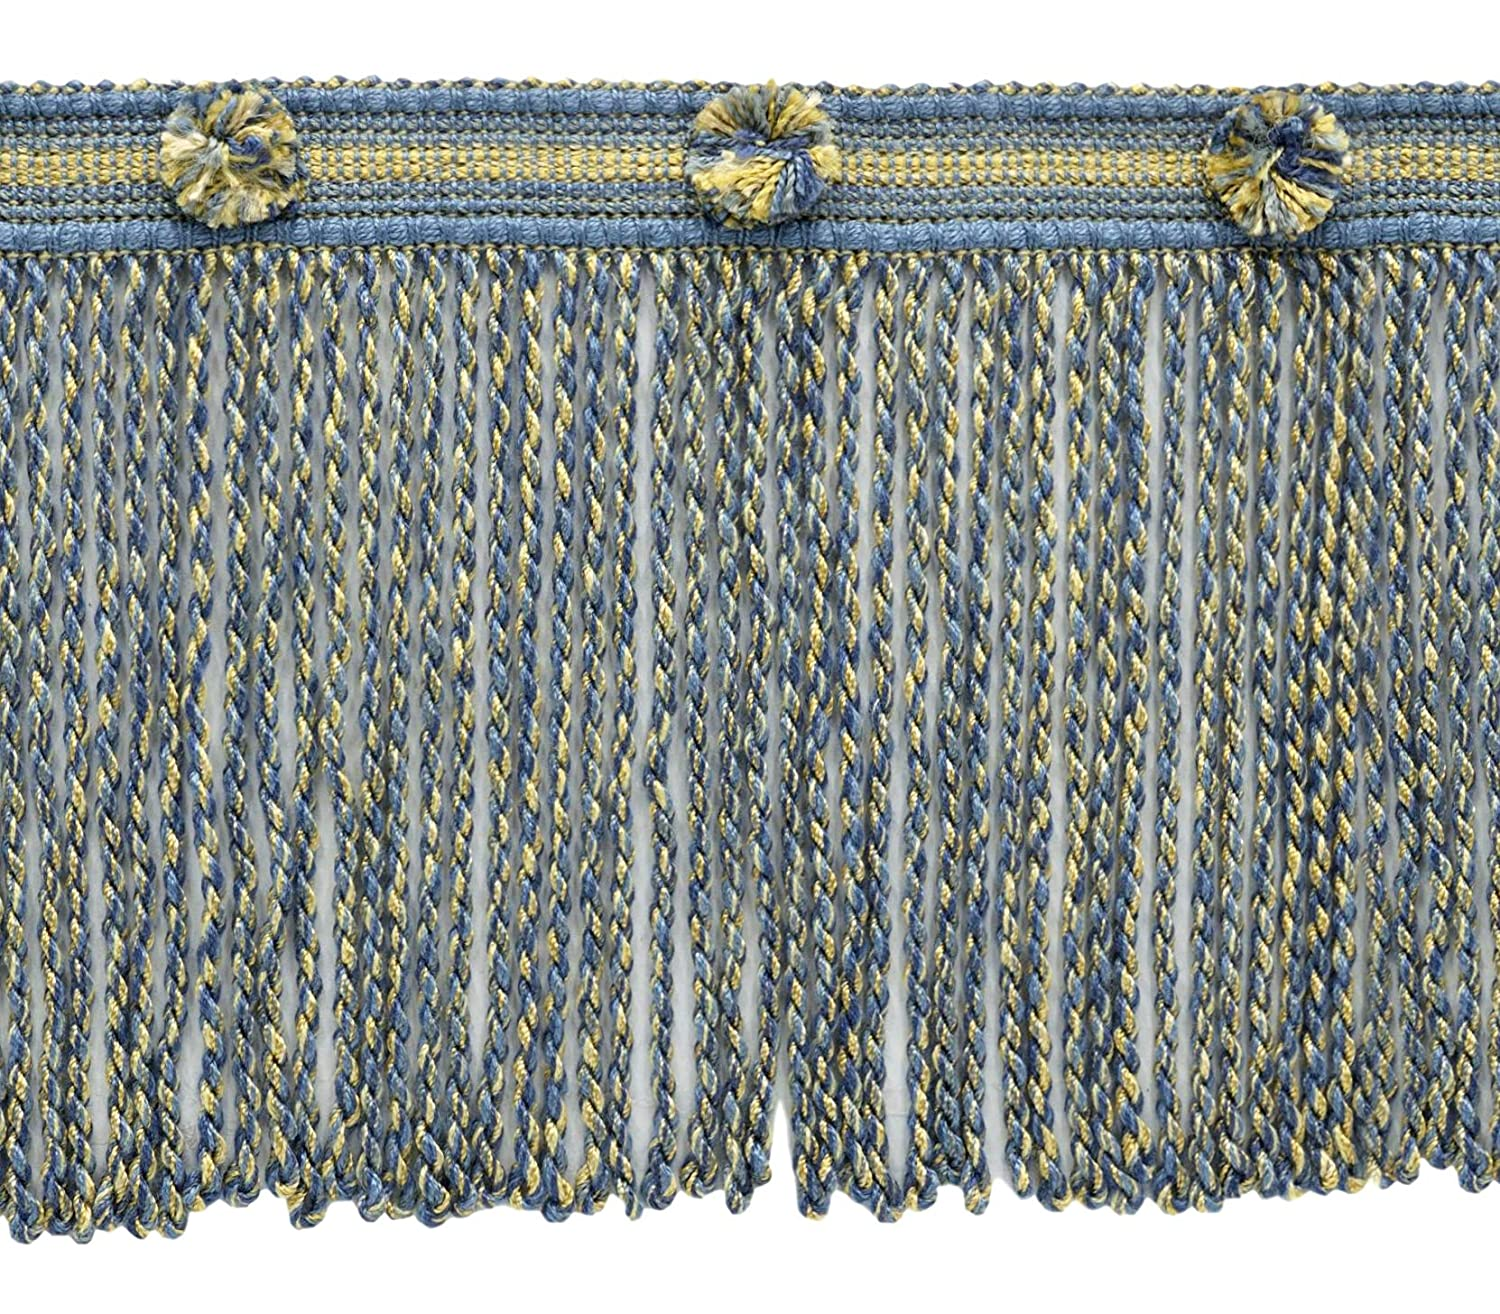 DecoPro 15cm Long French Blue, Cadet Blue, Gold, Champagne Bullion Fringe Trim|Style# BFHR6|Color: Boudior - 51527|Sold by the Yard (1 Yard = 91cm / 3ft / 36')